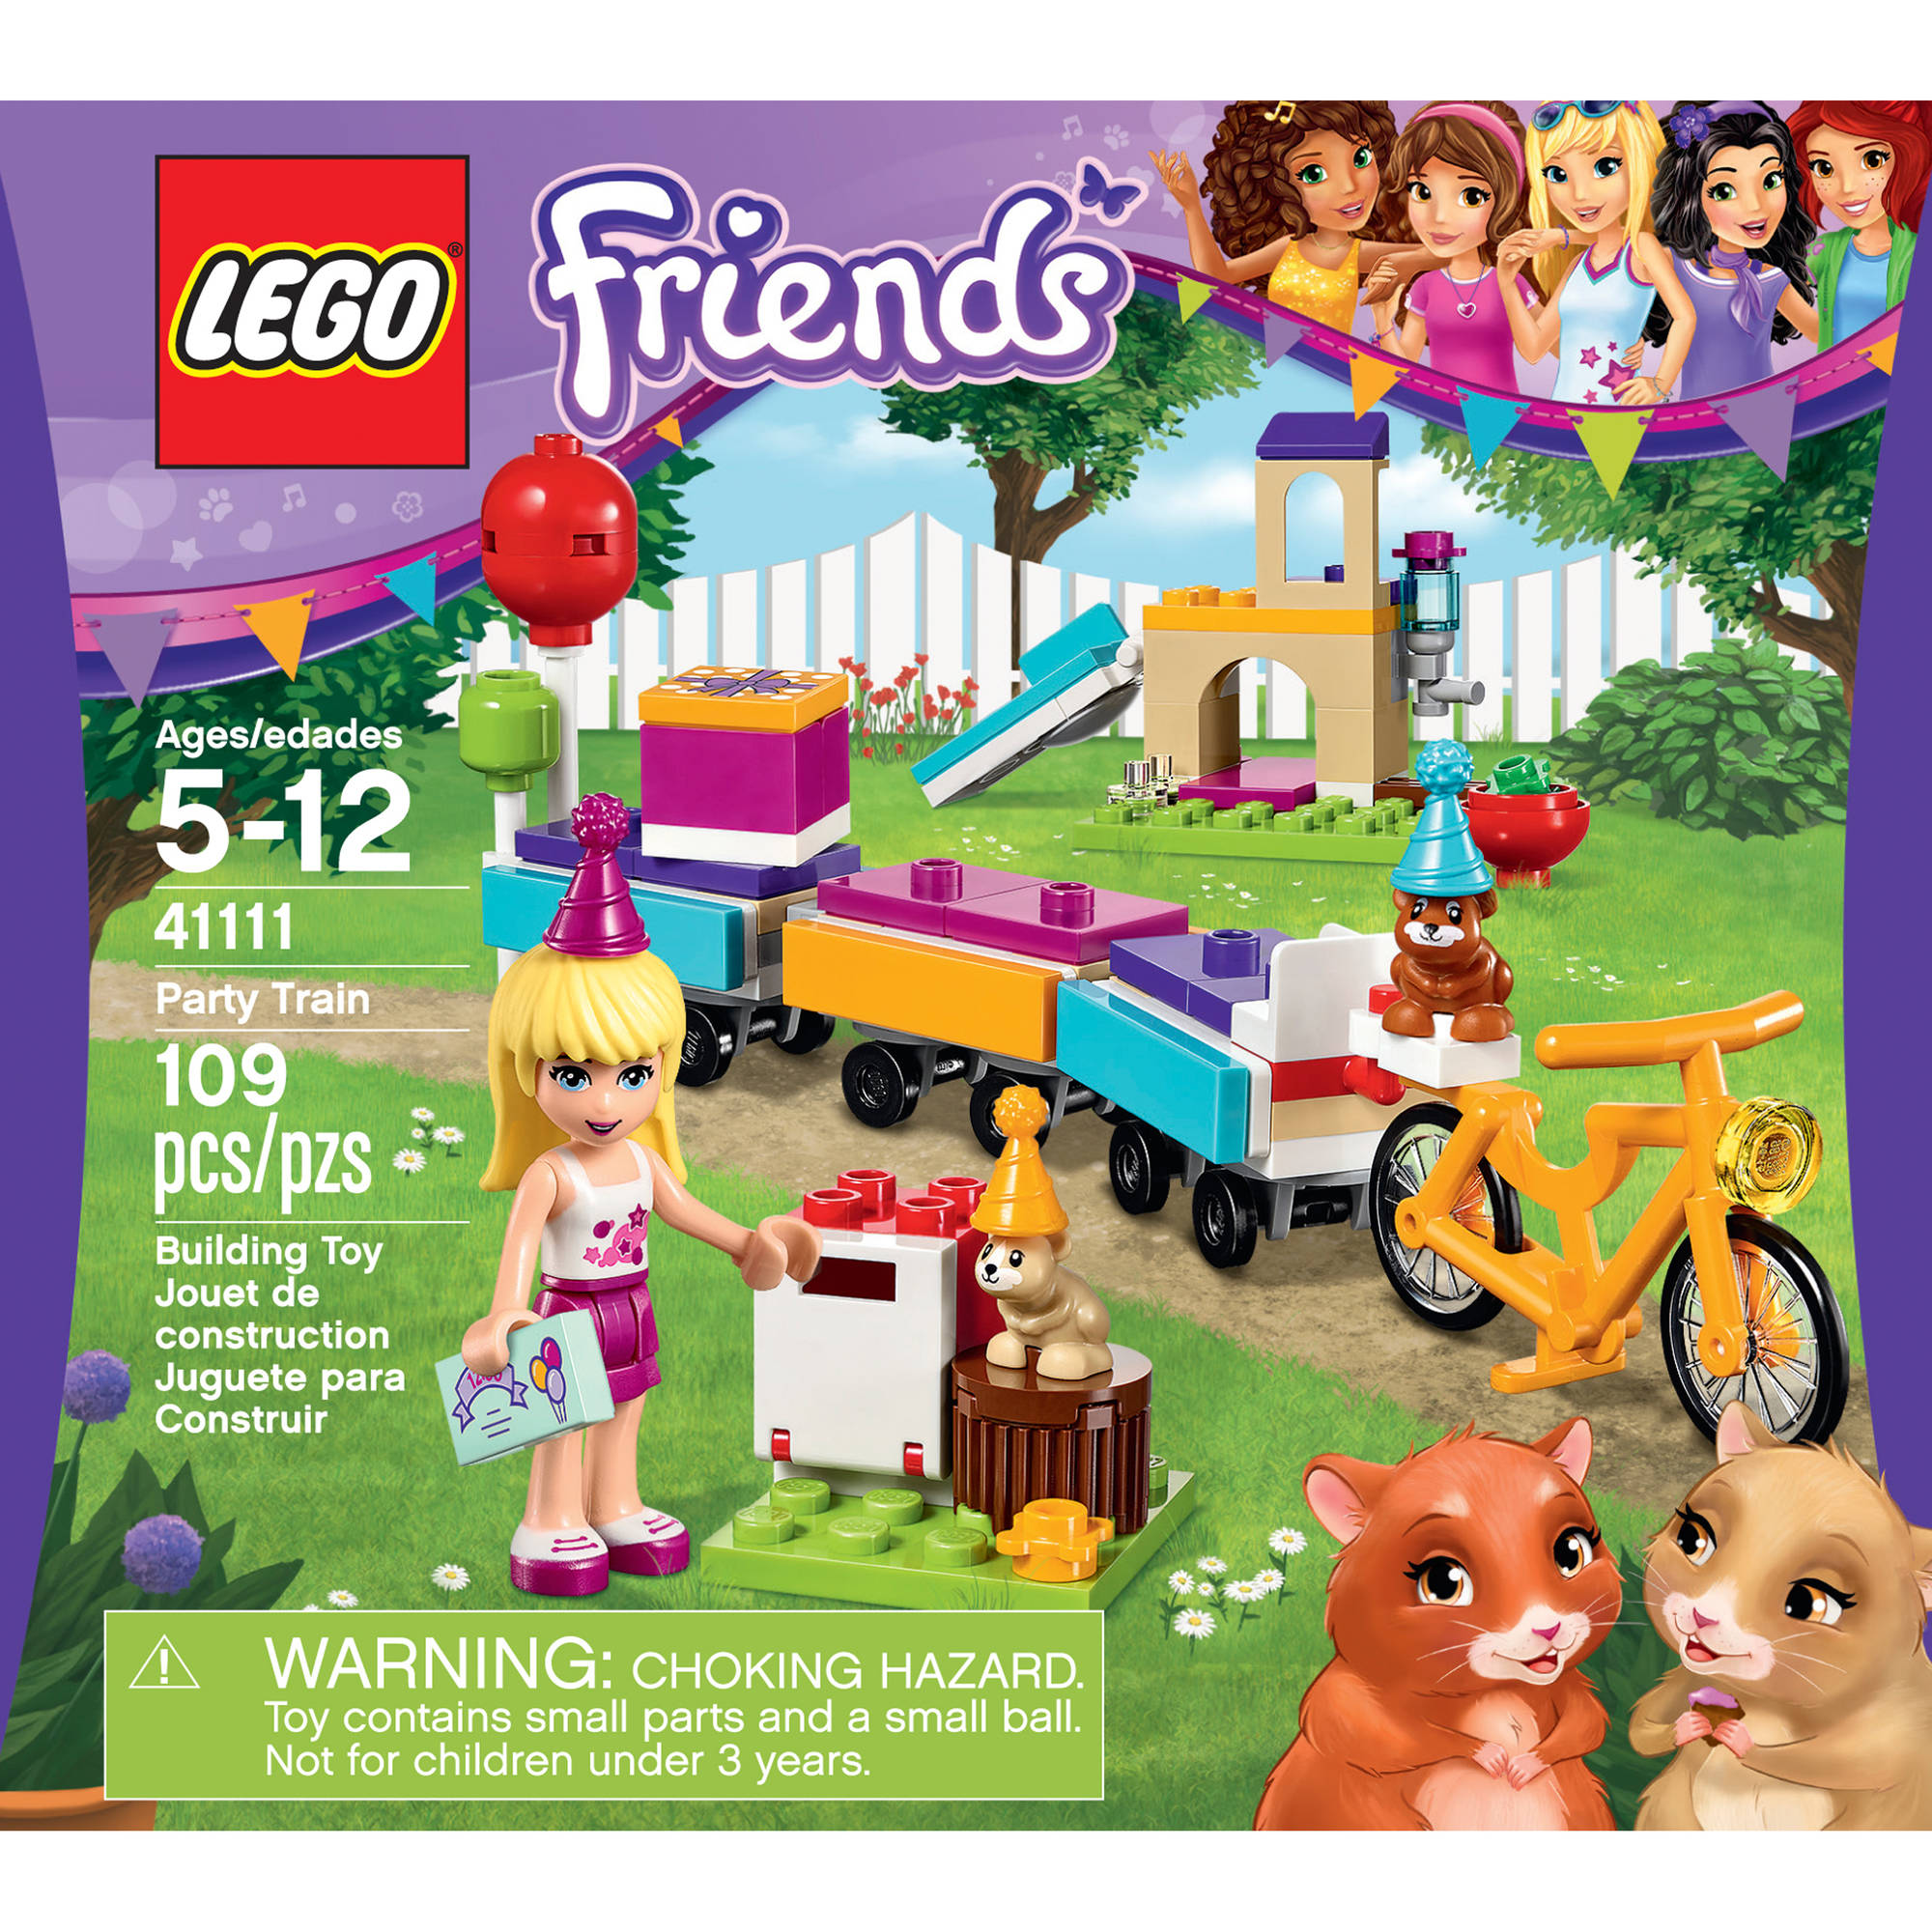 LEGO Friends Party Train, 41111 - Walmart.com